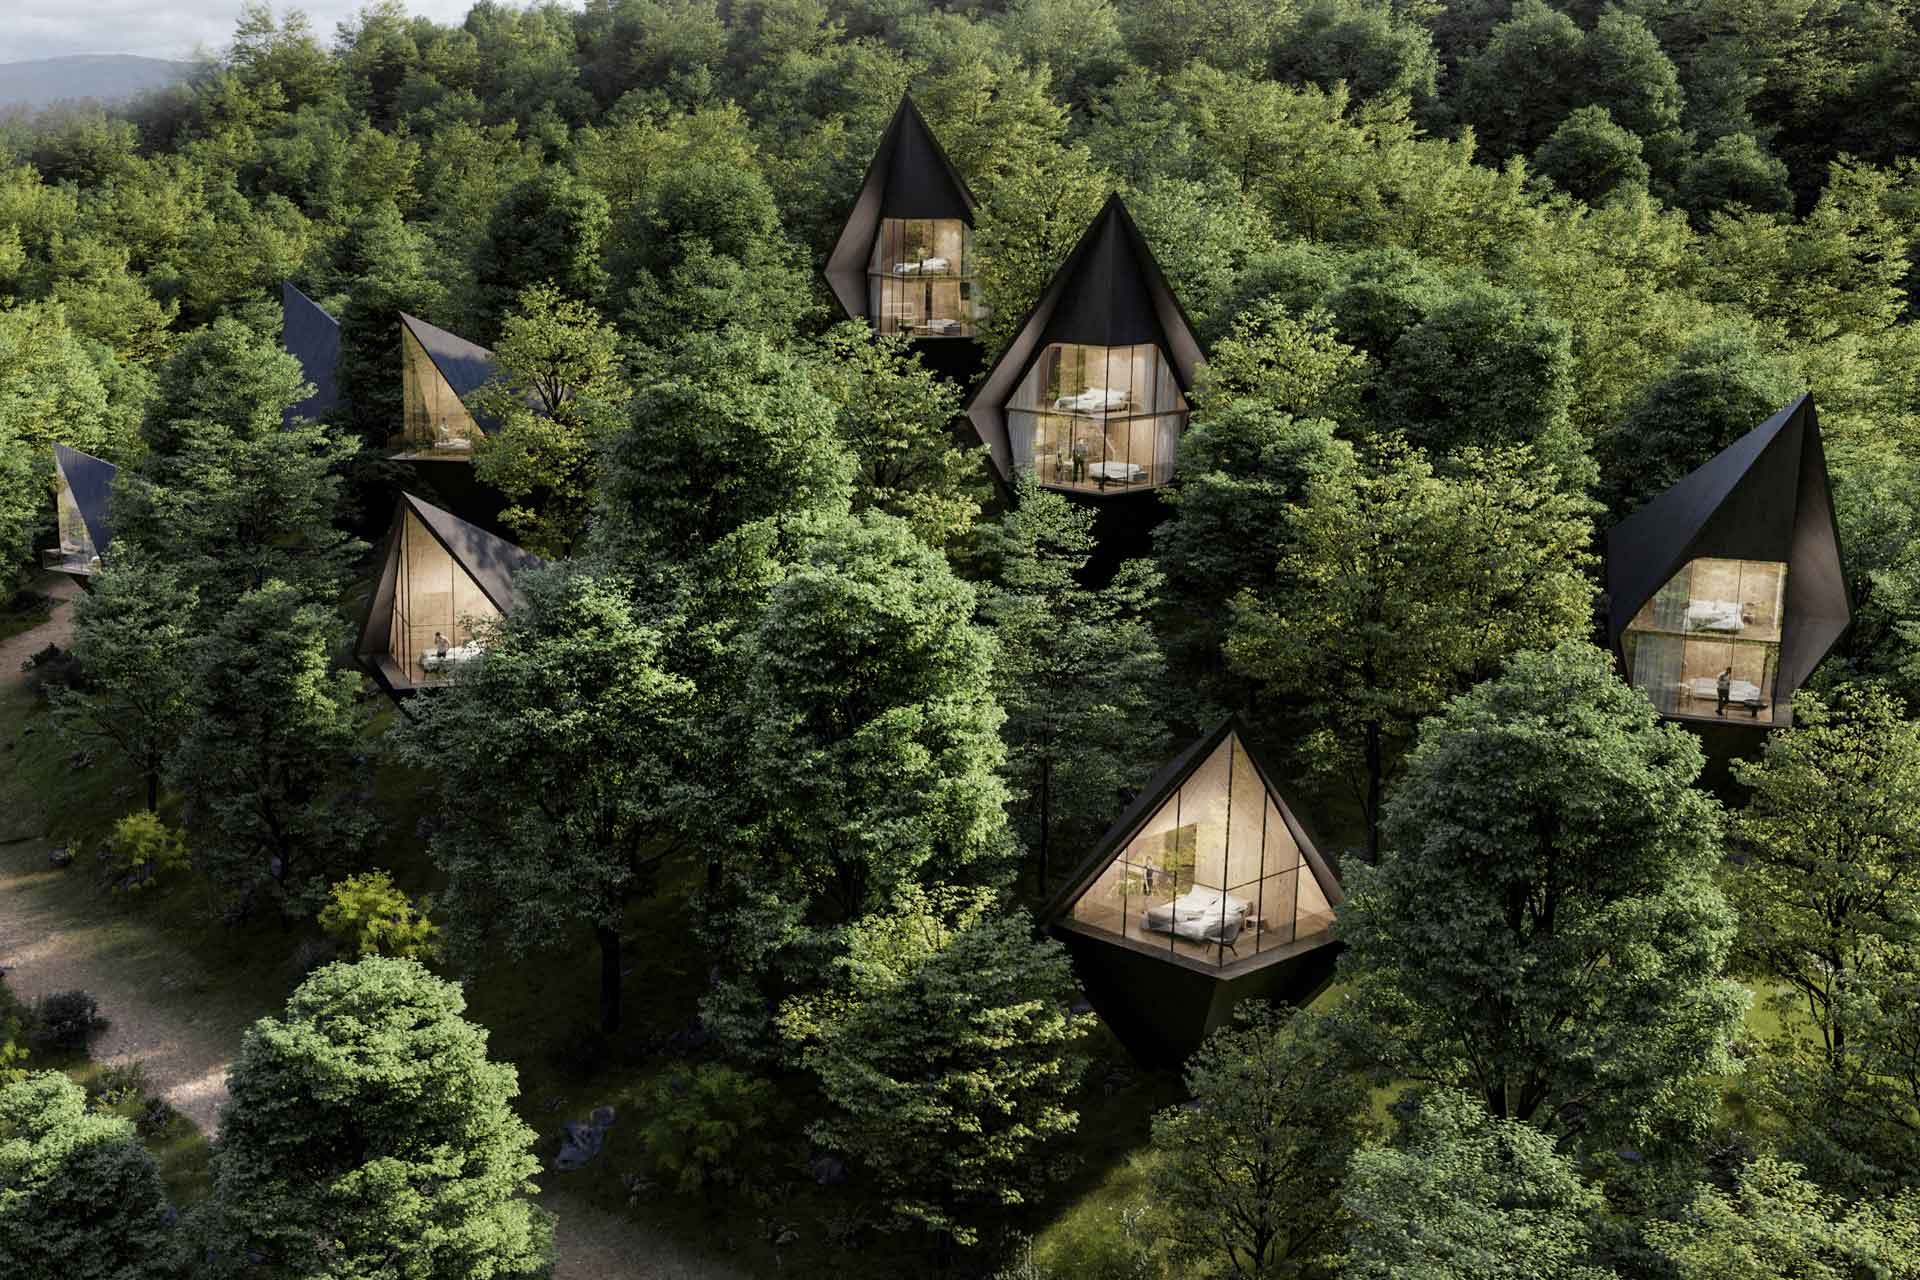 Exterior of Peter Pichler's West Virginia Tree Houses